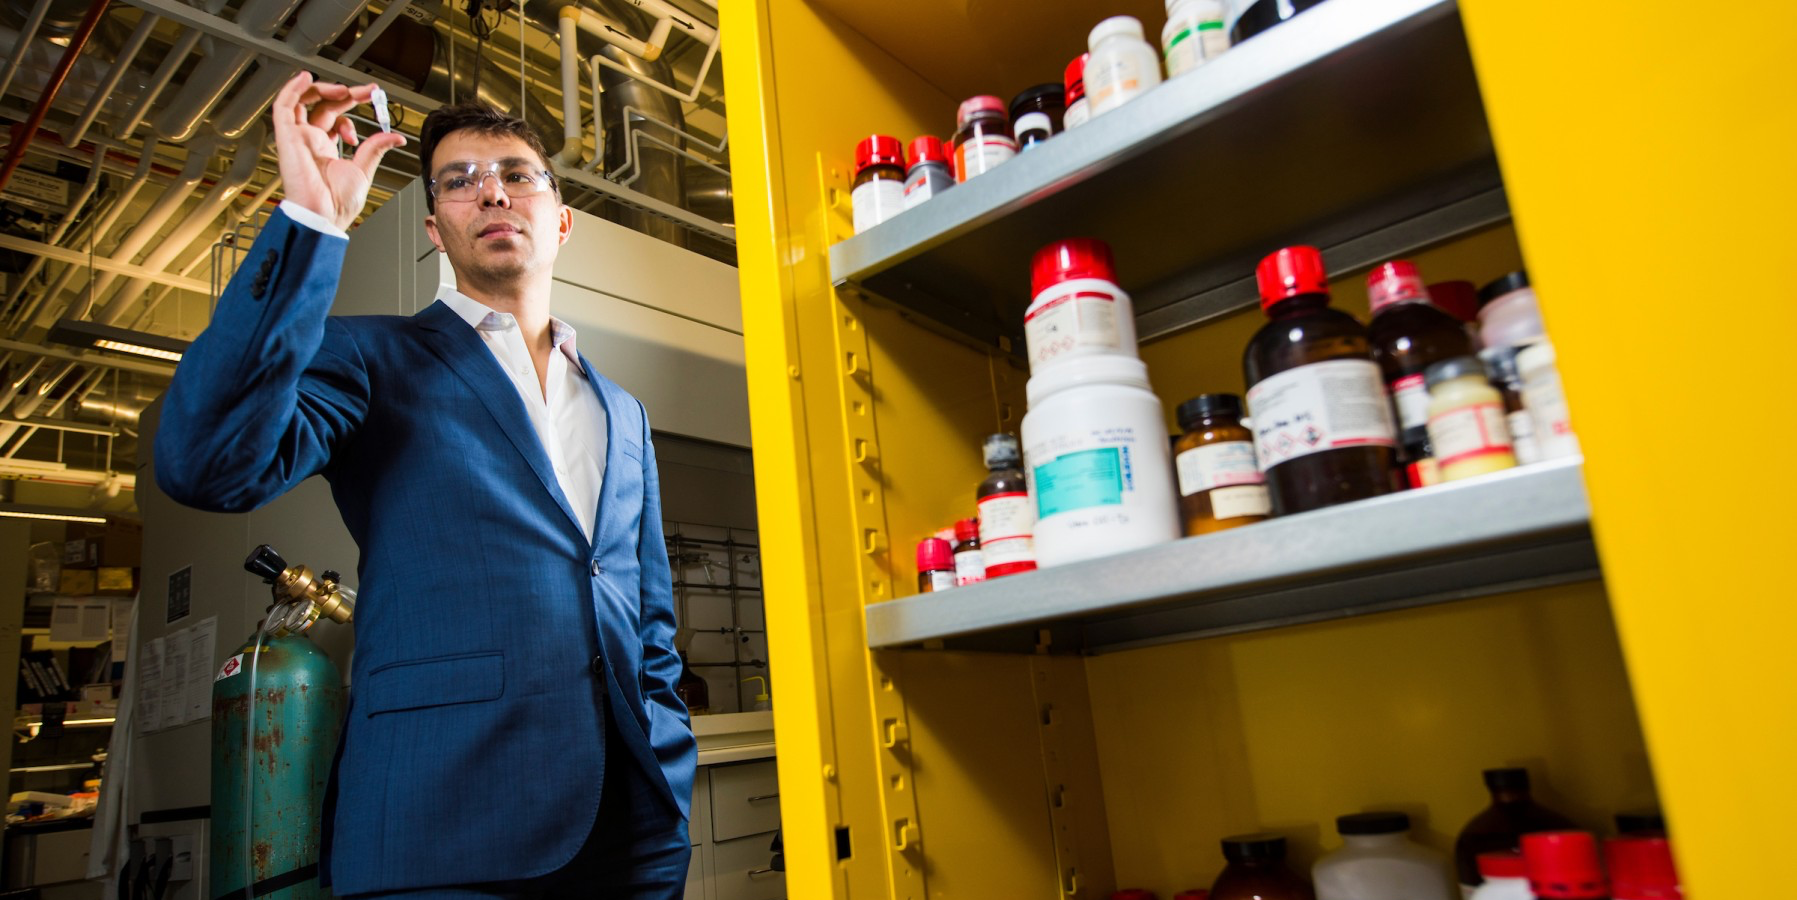 Ratmir Derda, assistant professor with the Department of Chemistry, uses the power of Google to push the boundaries of chemical biology.